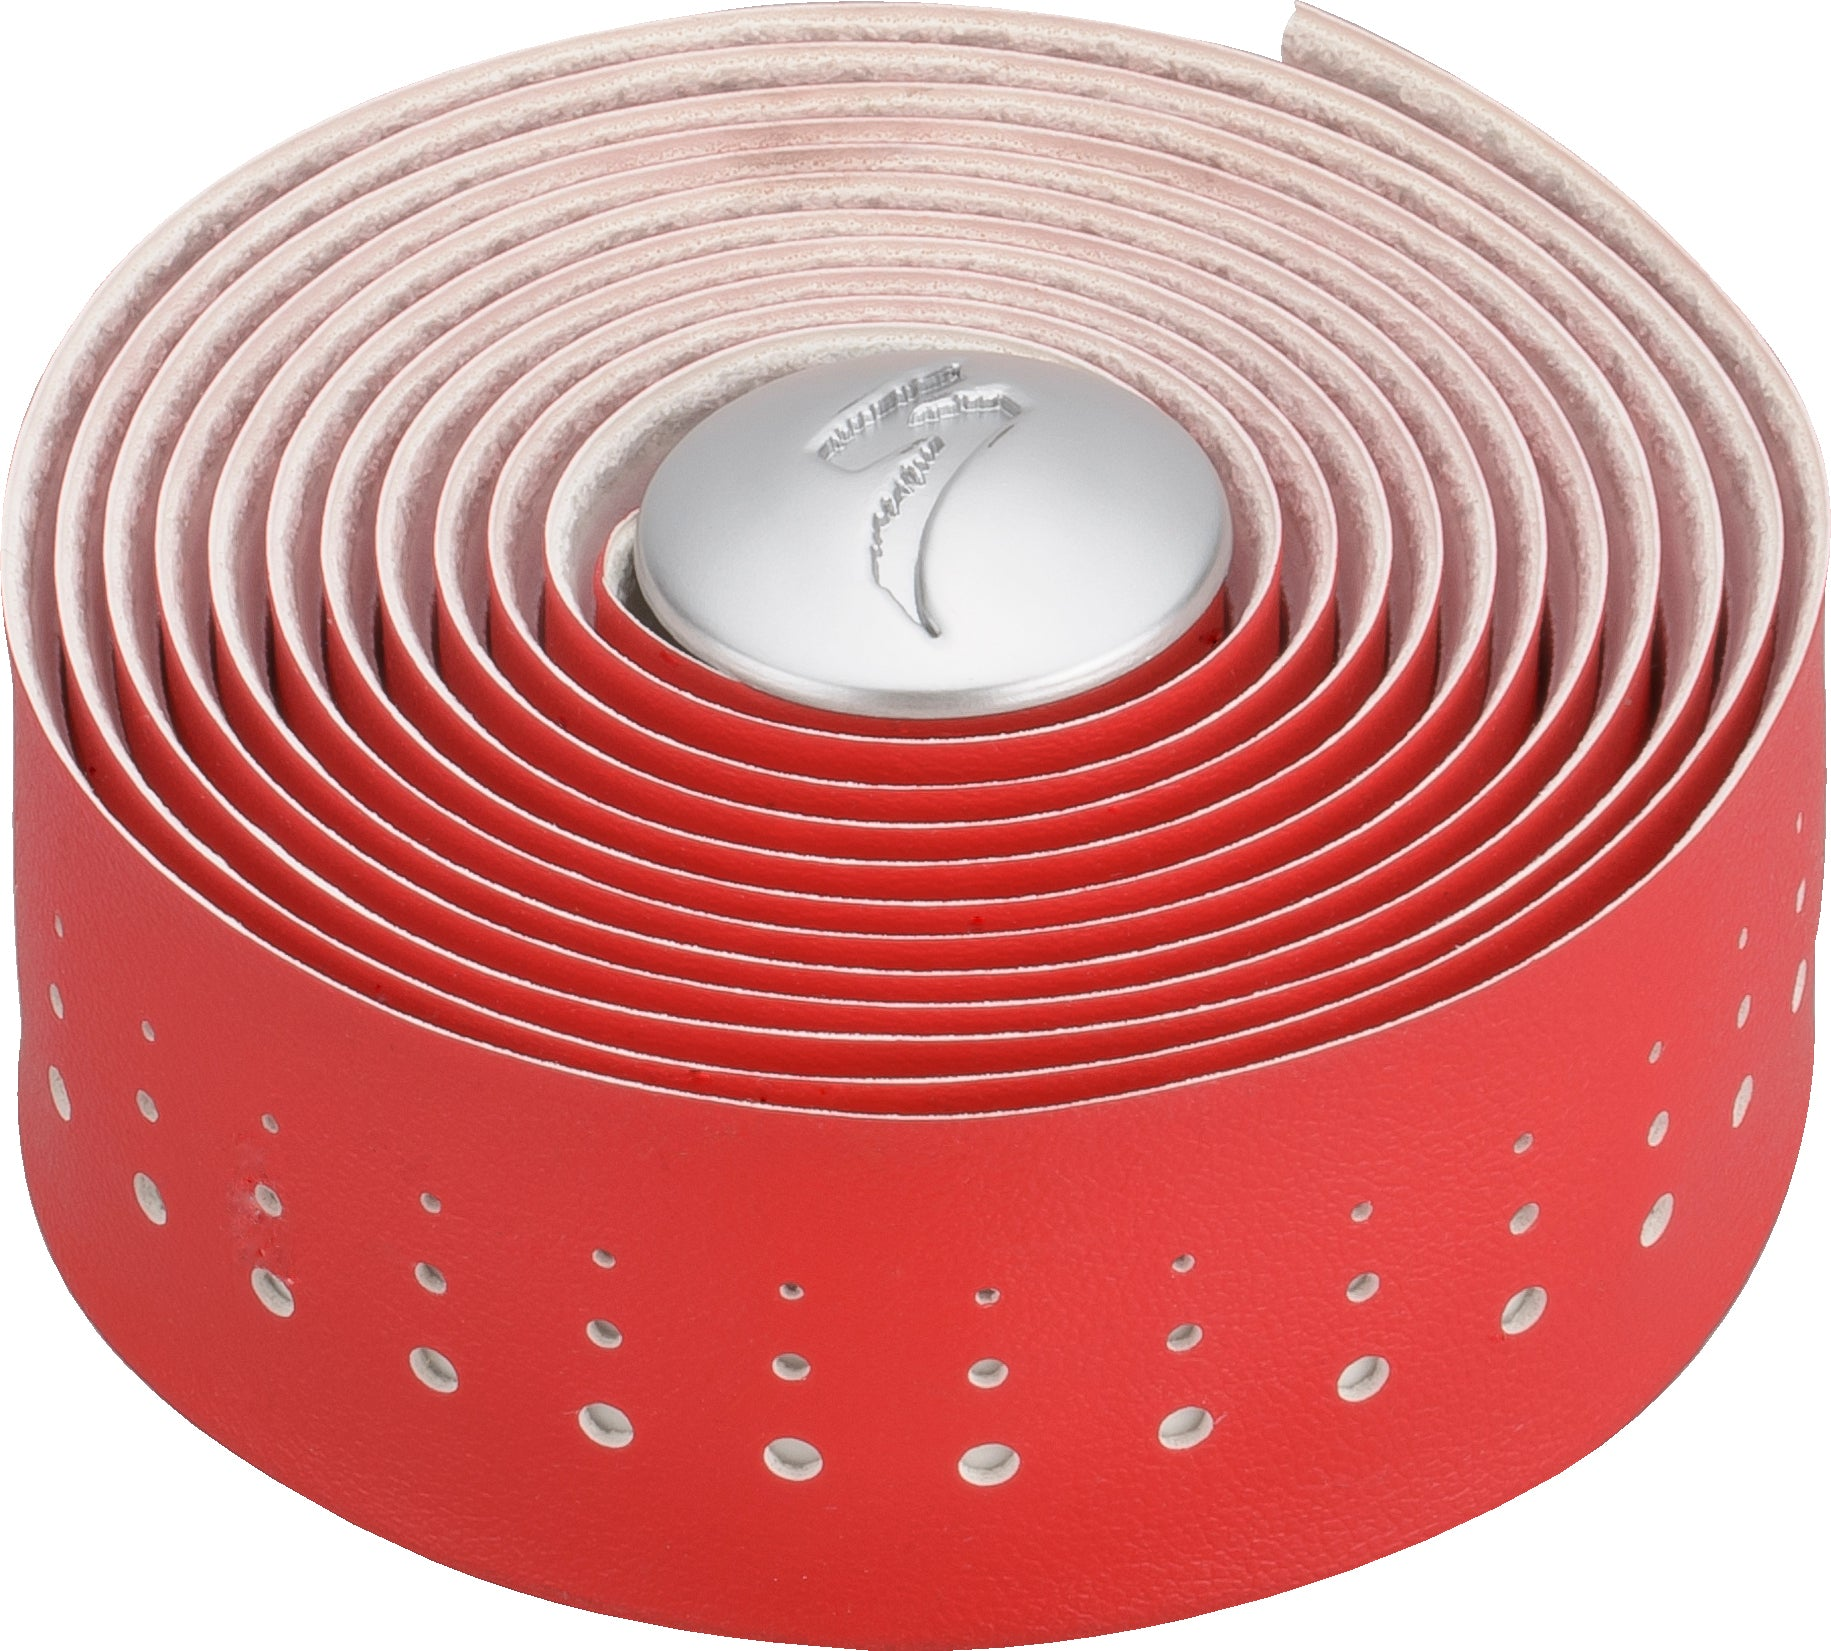 S-WRAP CLASSIC SYNTHETIC LEATHER TAPE RED/WHT